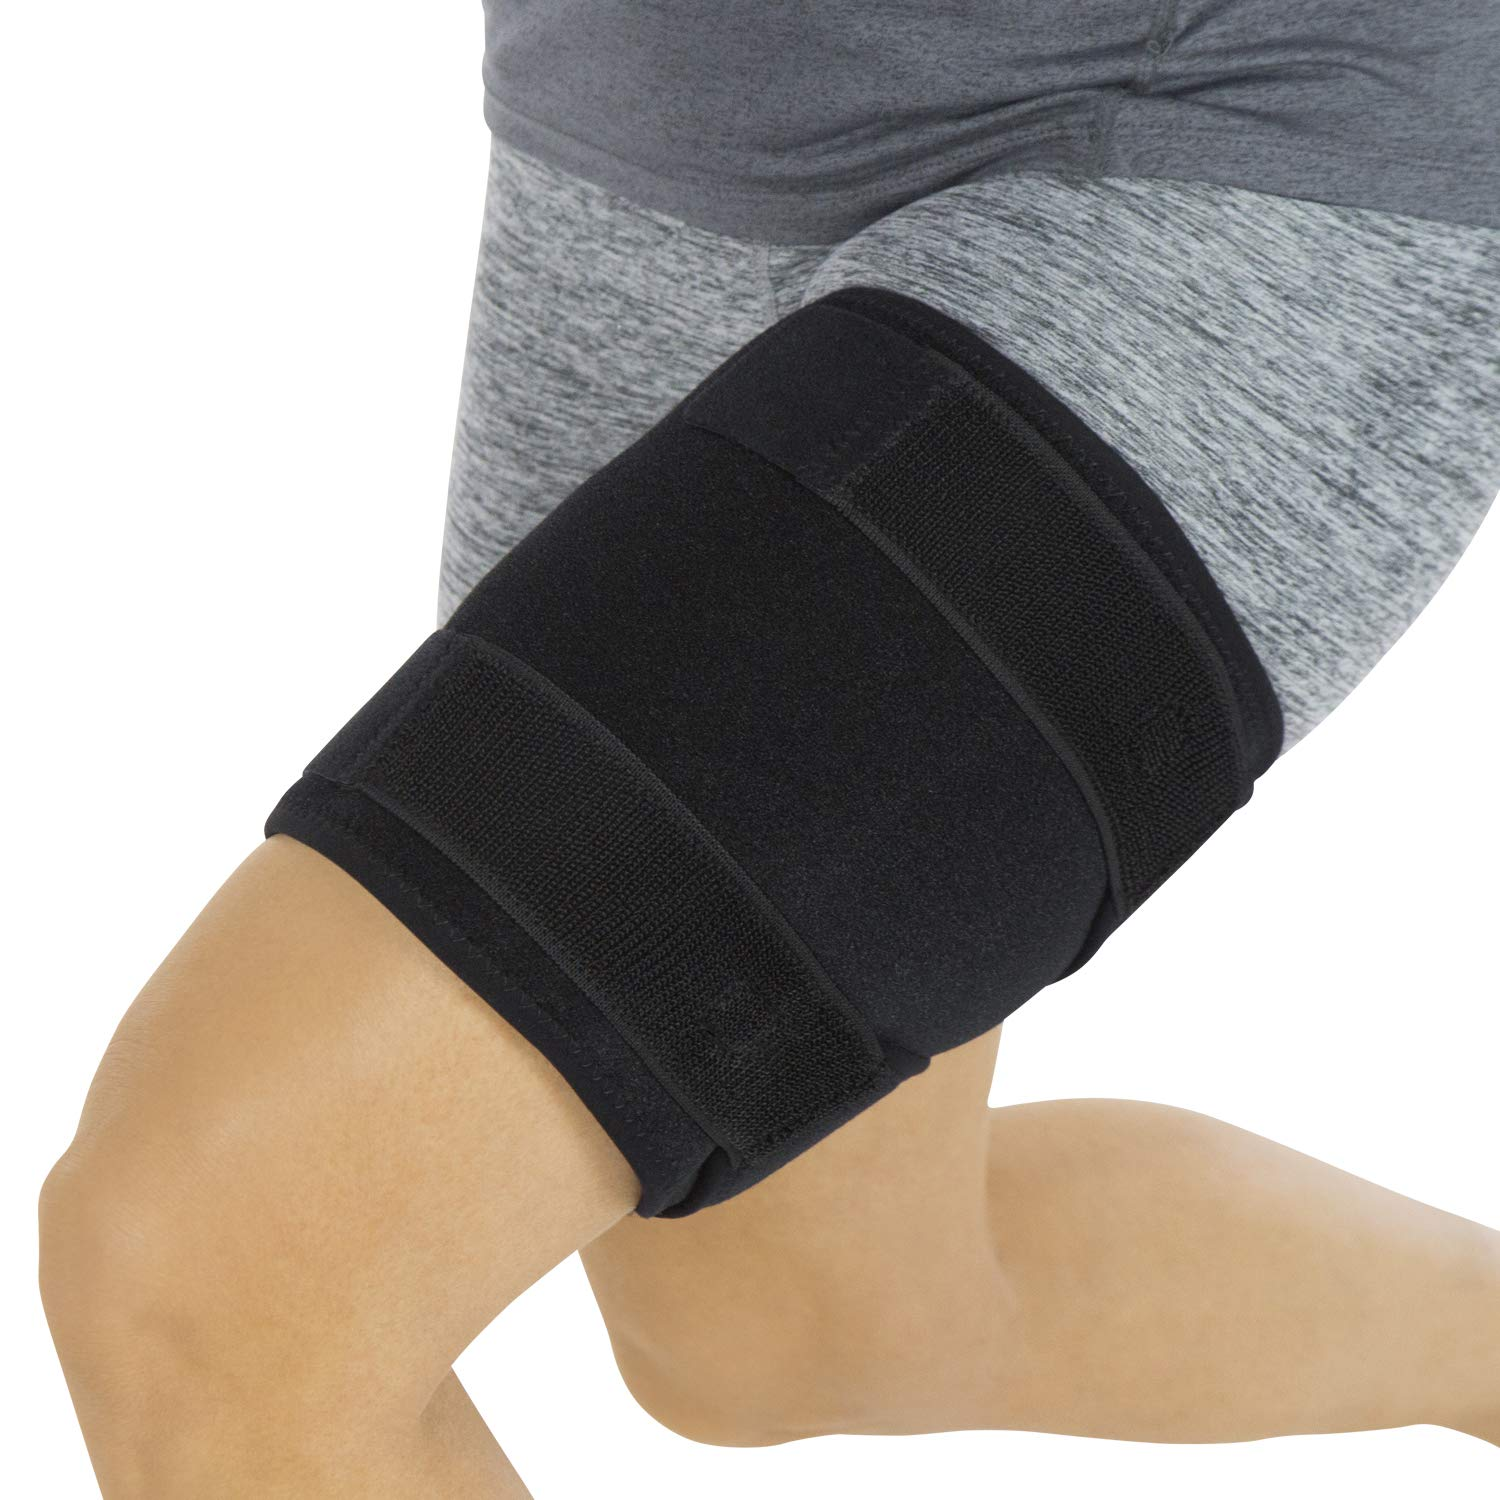 Vive Thigh Brace - Hamstring Quad Wrap - Adjustable Compression Sleeve Support for Pulled Groin Muscle, Sprains, Quadricep, Tendinitis, Workouts, Cellulite Slimmer, Sports Injury Recovery - Men, Women by Vive